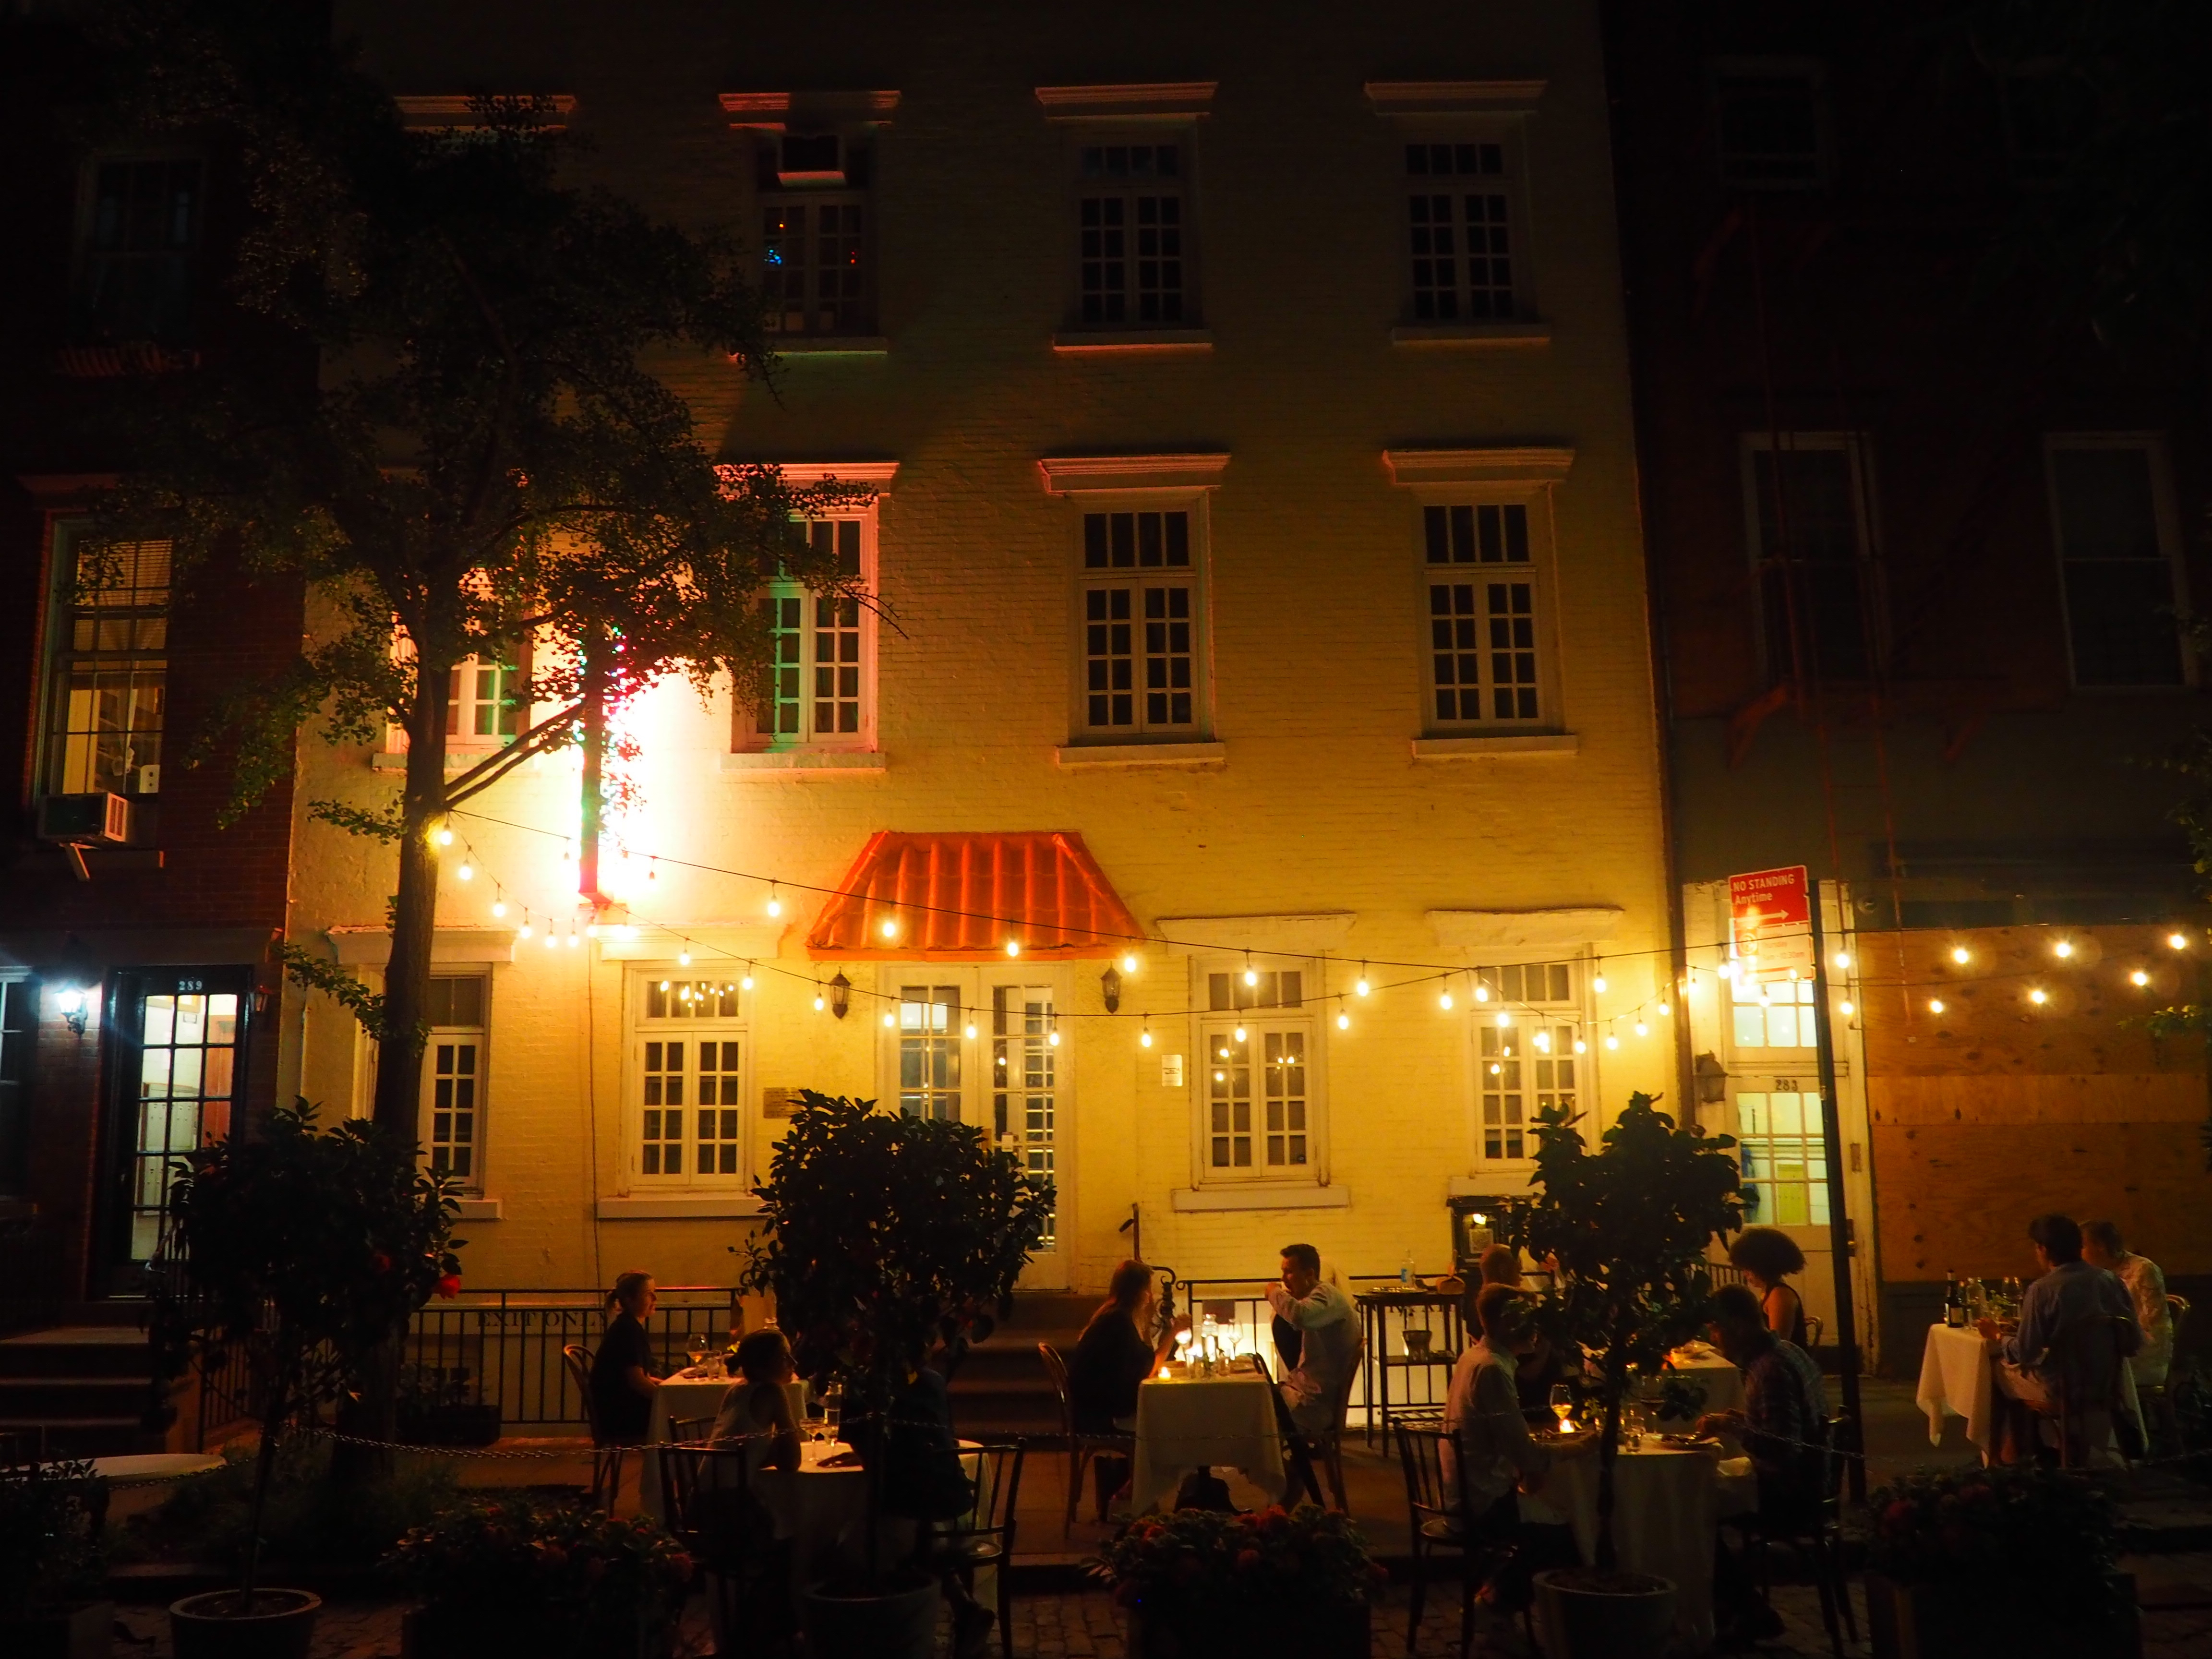 Outdoor dining in front of a restaurant at night with lights strung up around the outdoor tables